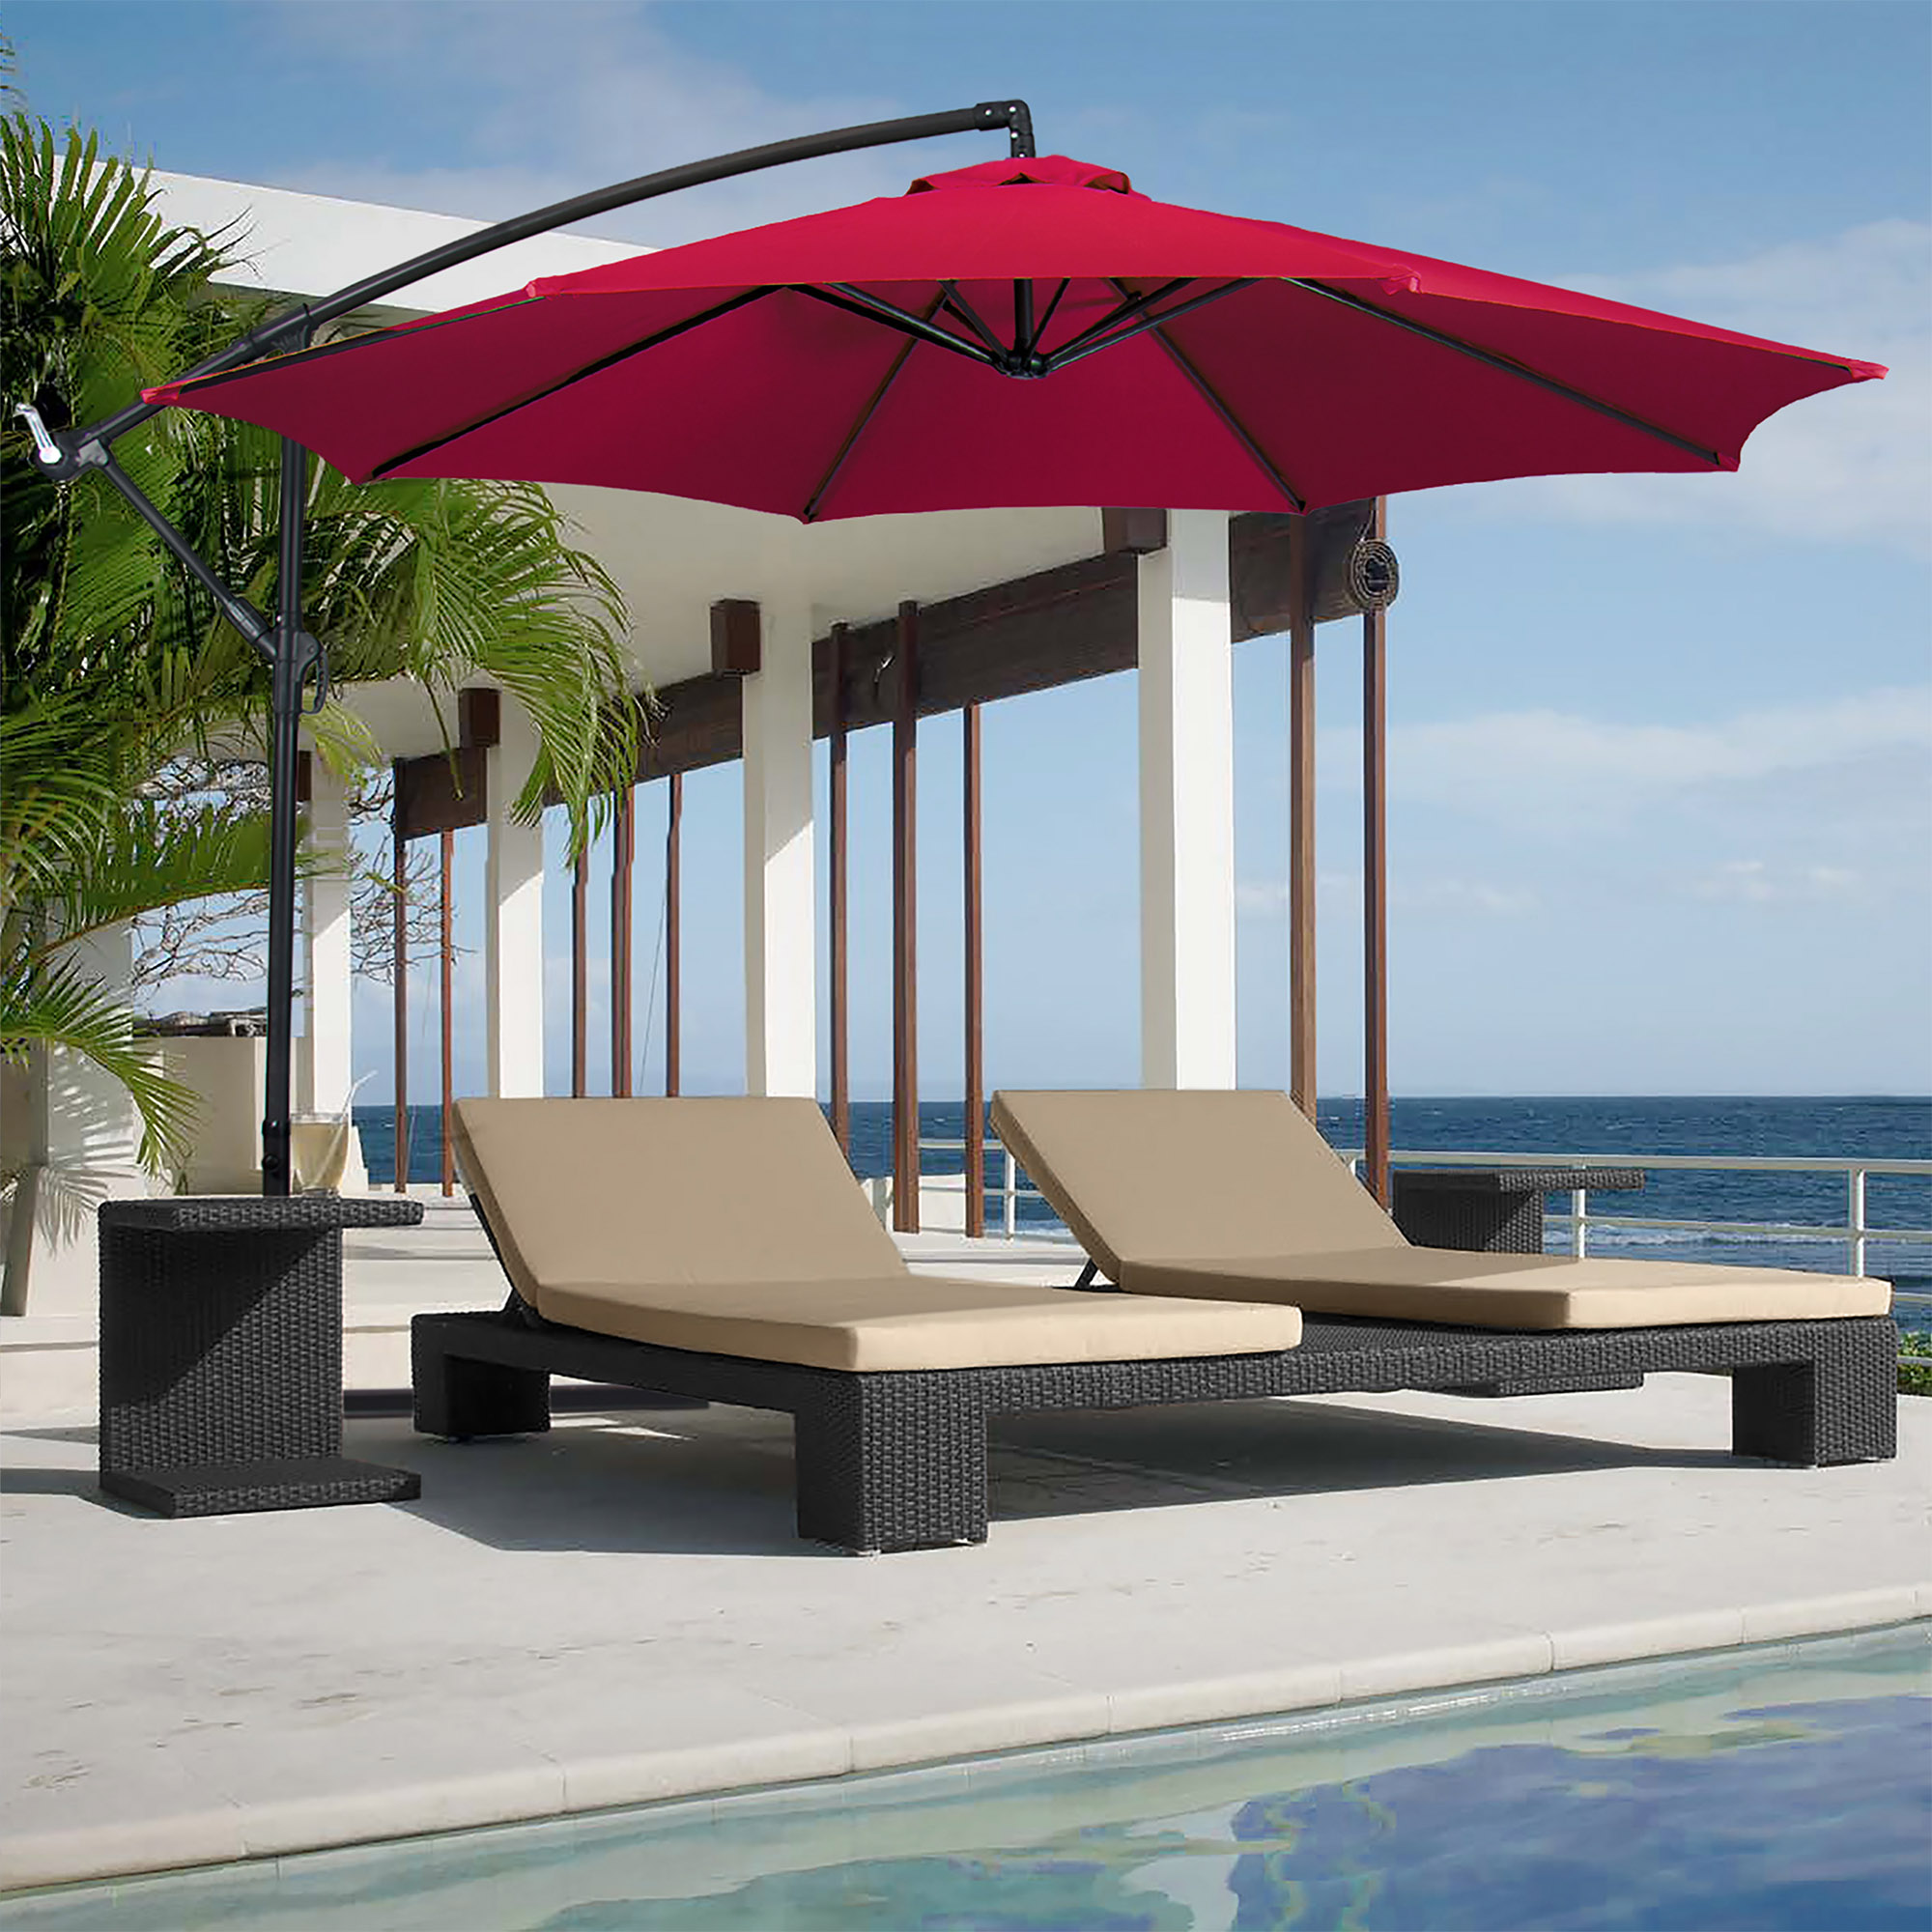 Best Choice Products 10ft Offset Hanging Outdoor Market Patio Umbrella    Multiple Colors Image 2 Of